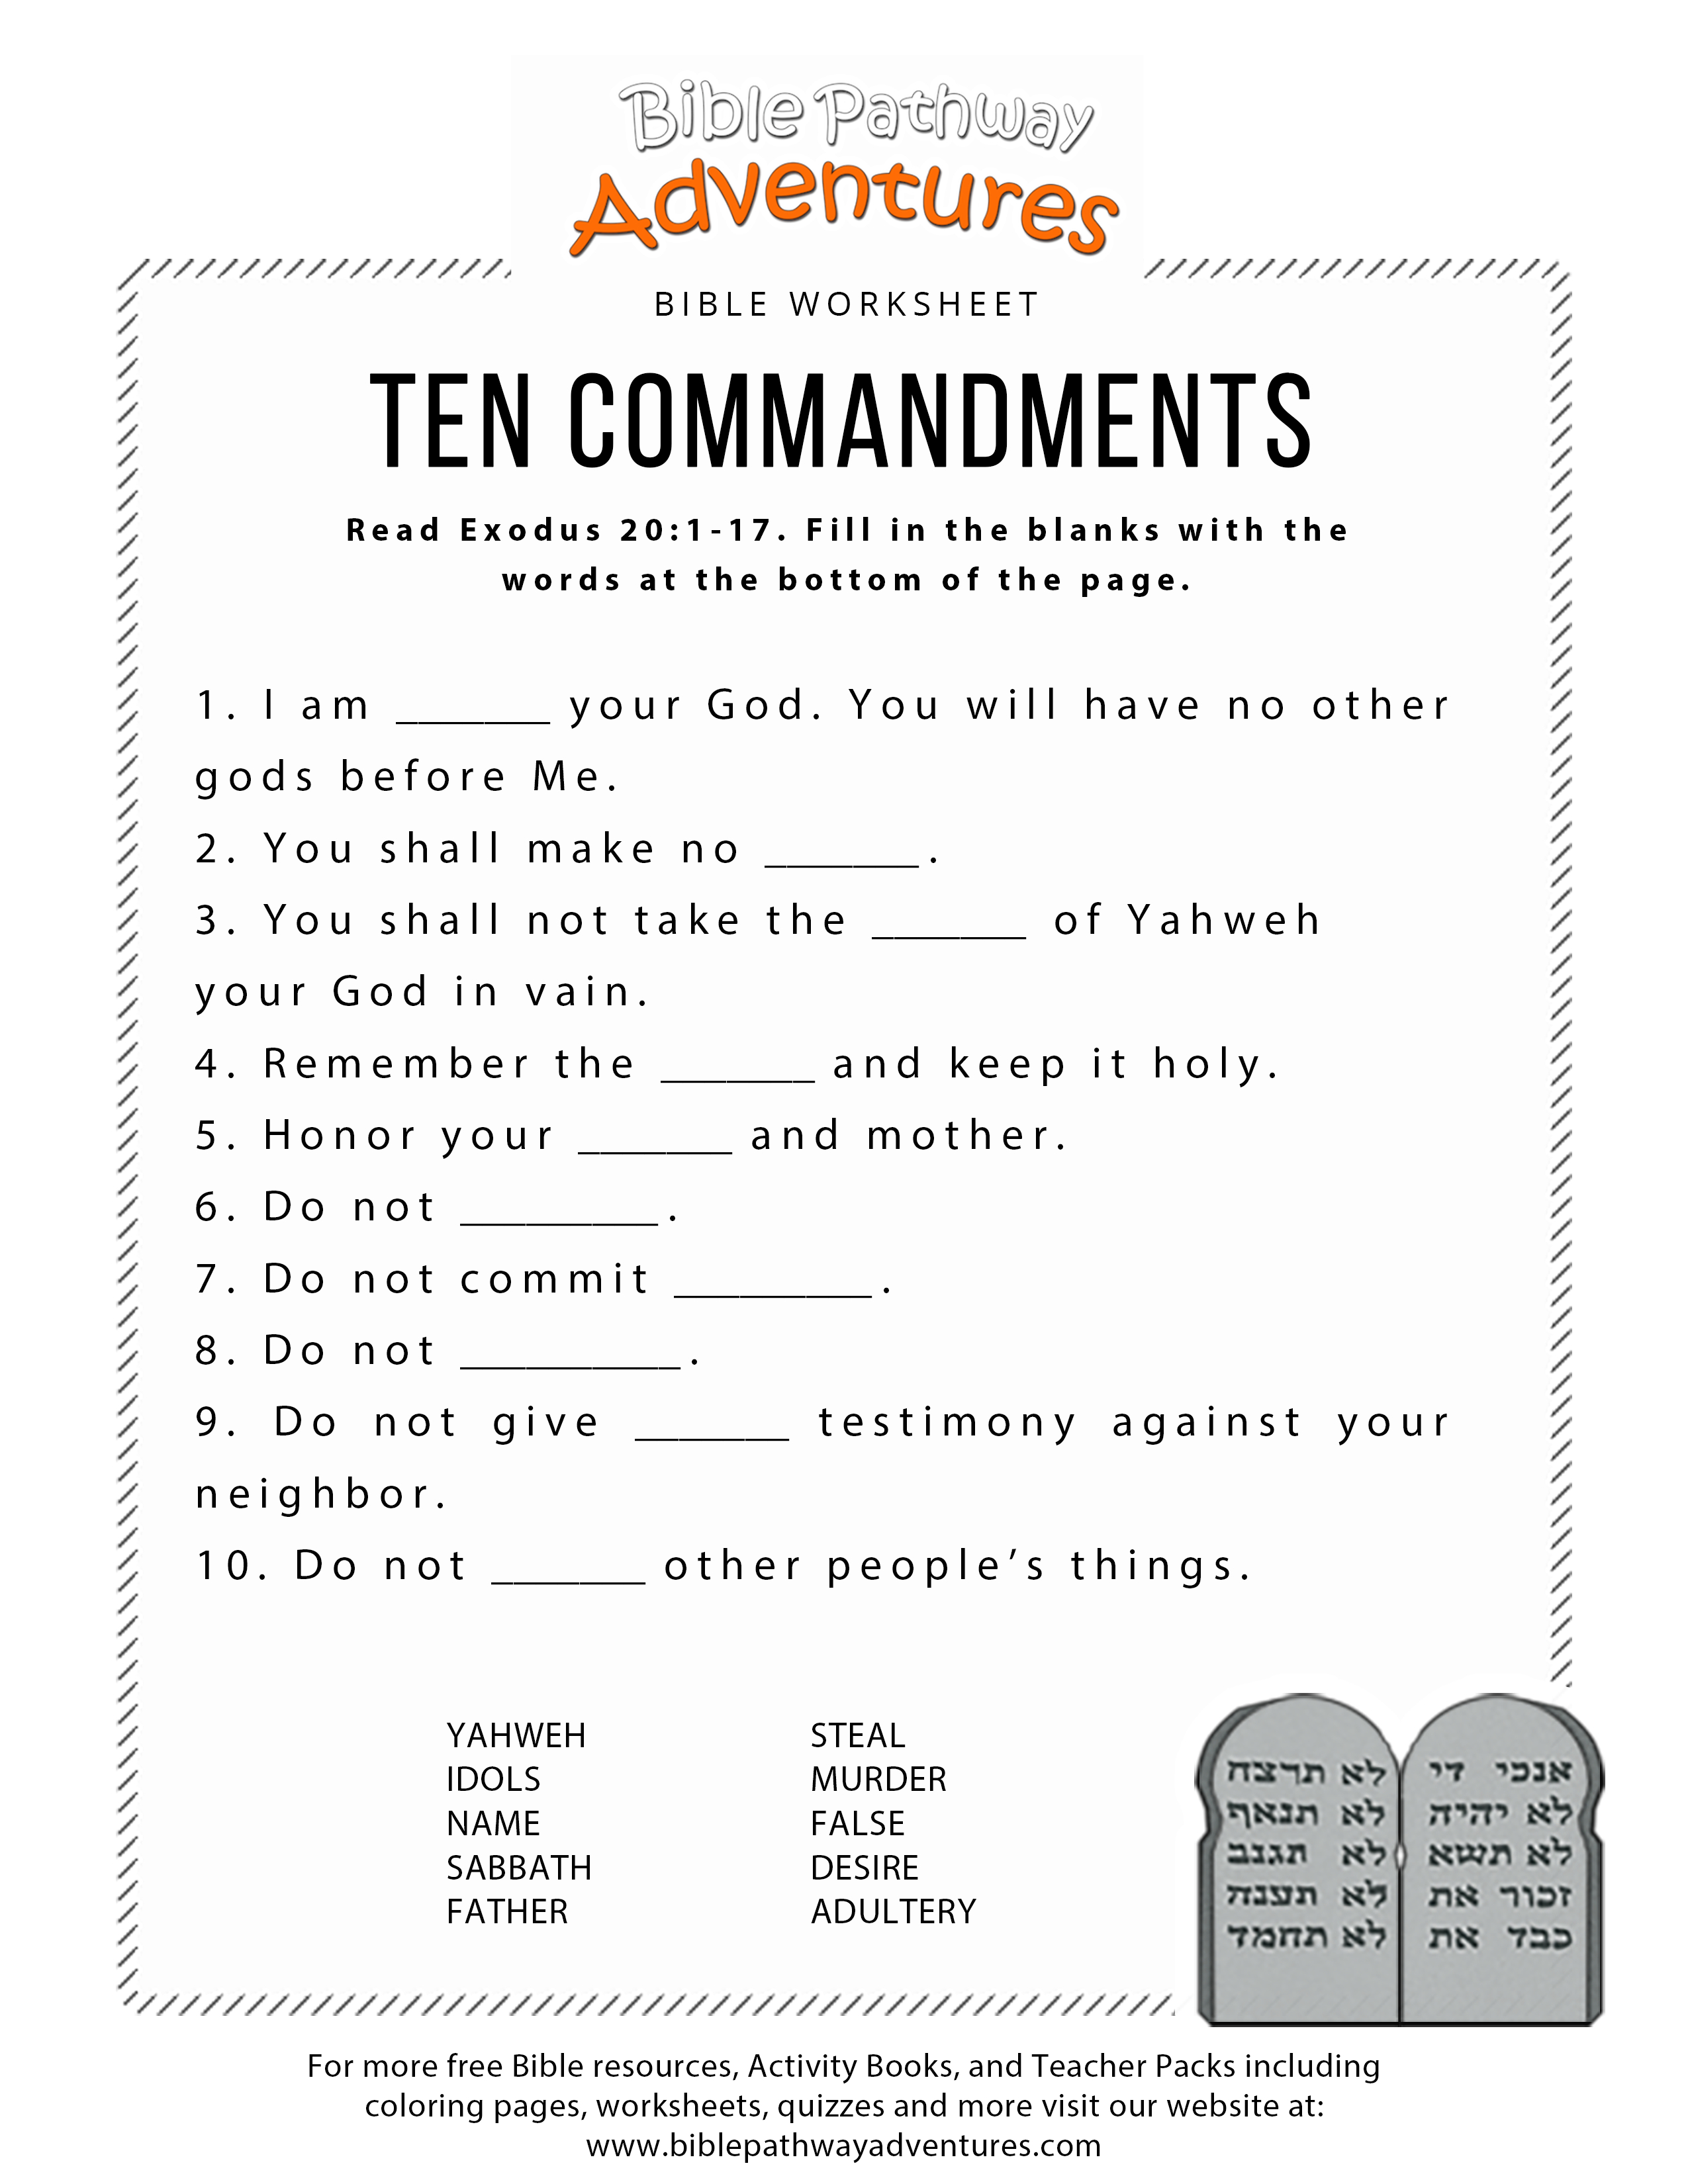 Ten Commandments Worksheet For Kids | Worksheets For Psr | Bible - Free Printable Ten Commandments Coloring Pages